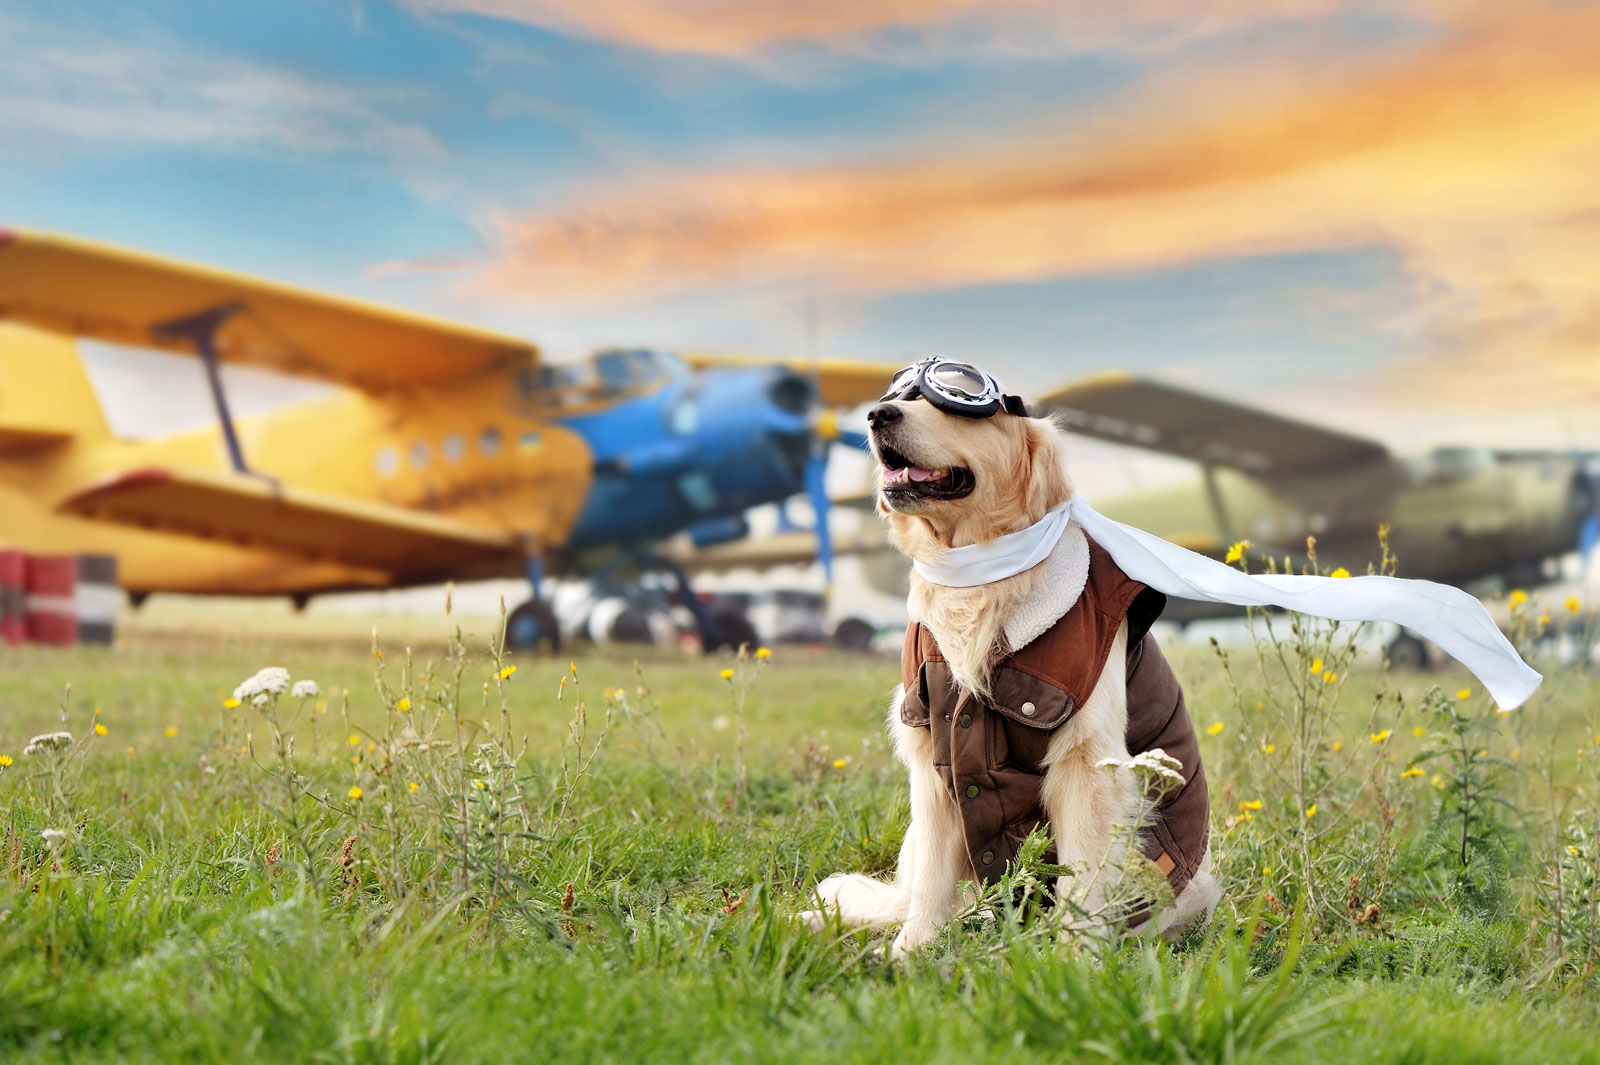 Can_I_Fly_with_My_Pets_CBD_05_20_21